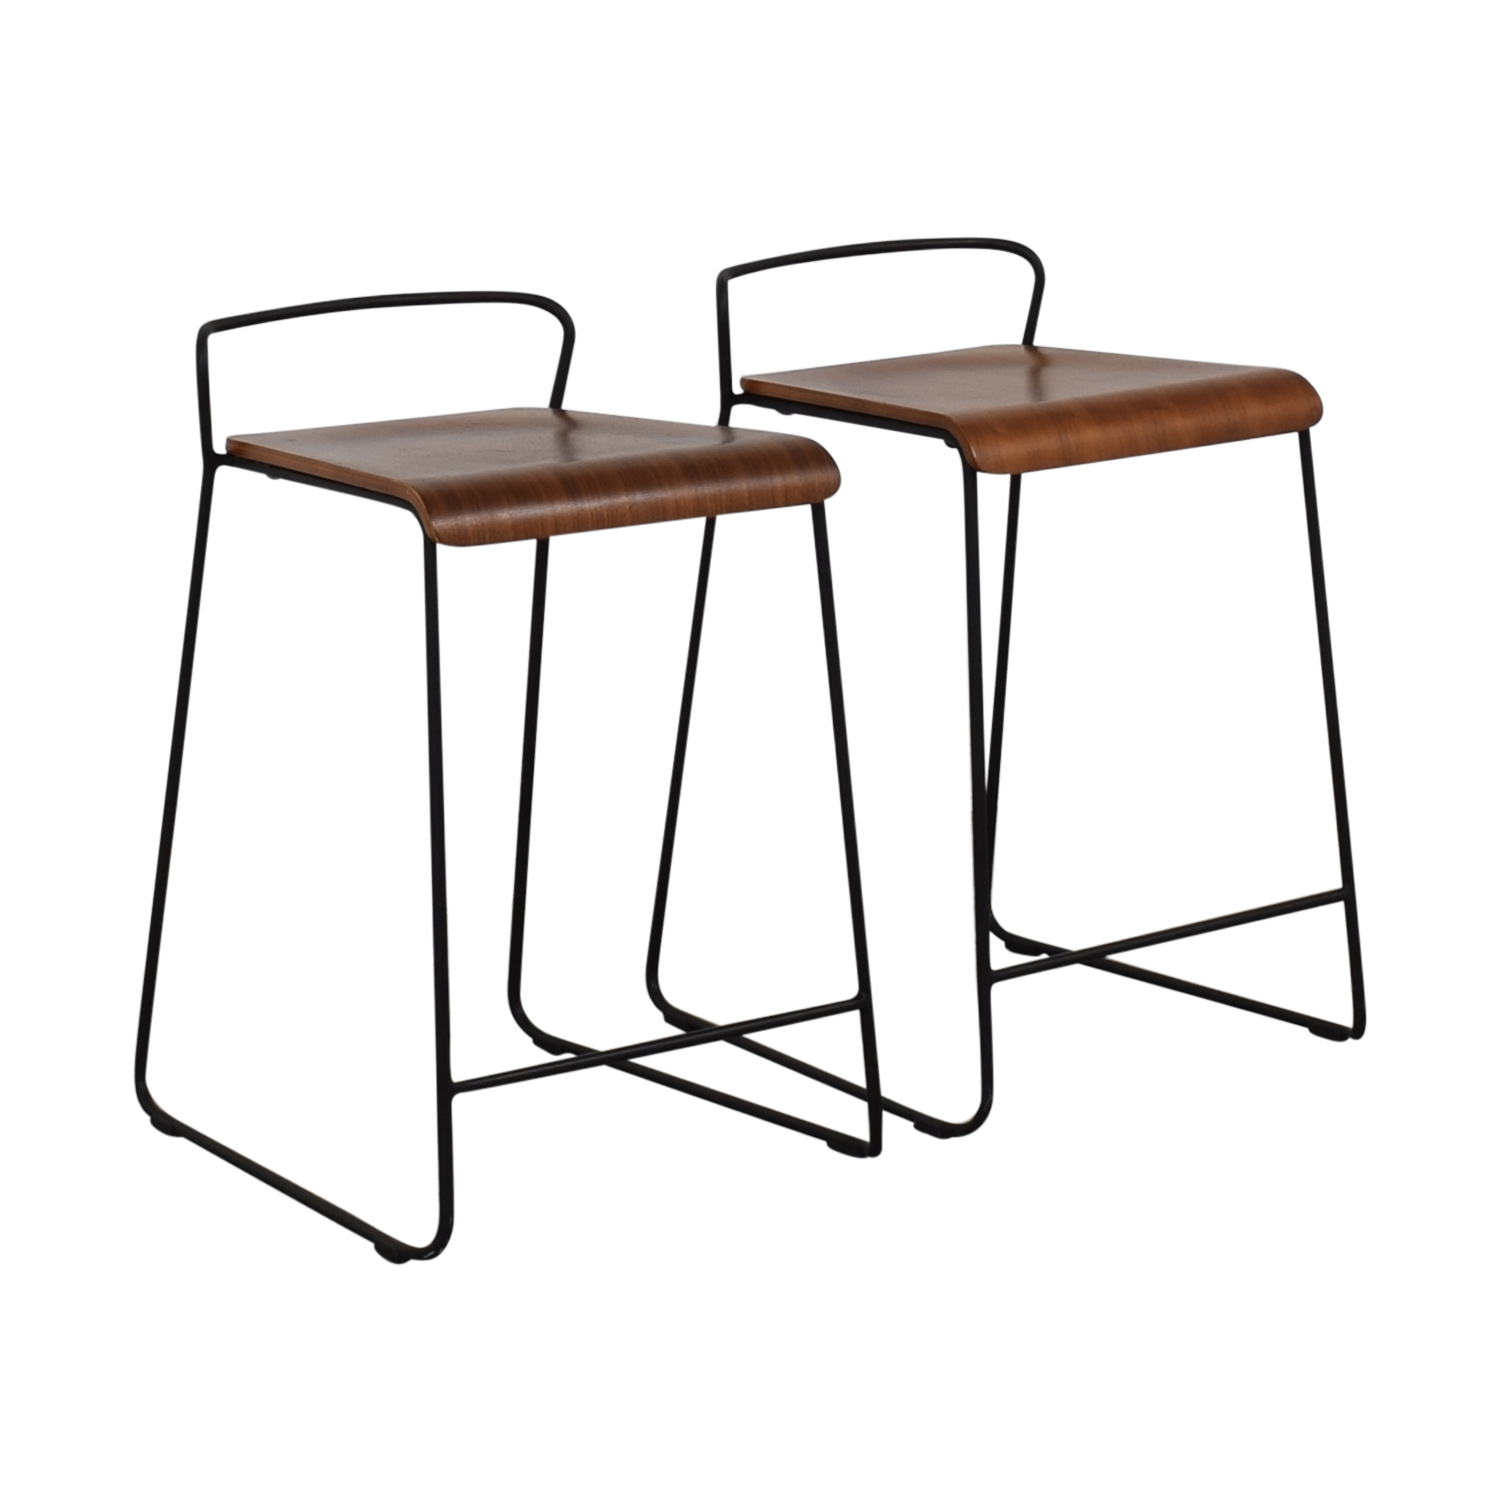 m.a.d. m.a.d. Transit Counter Stools price